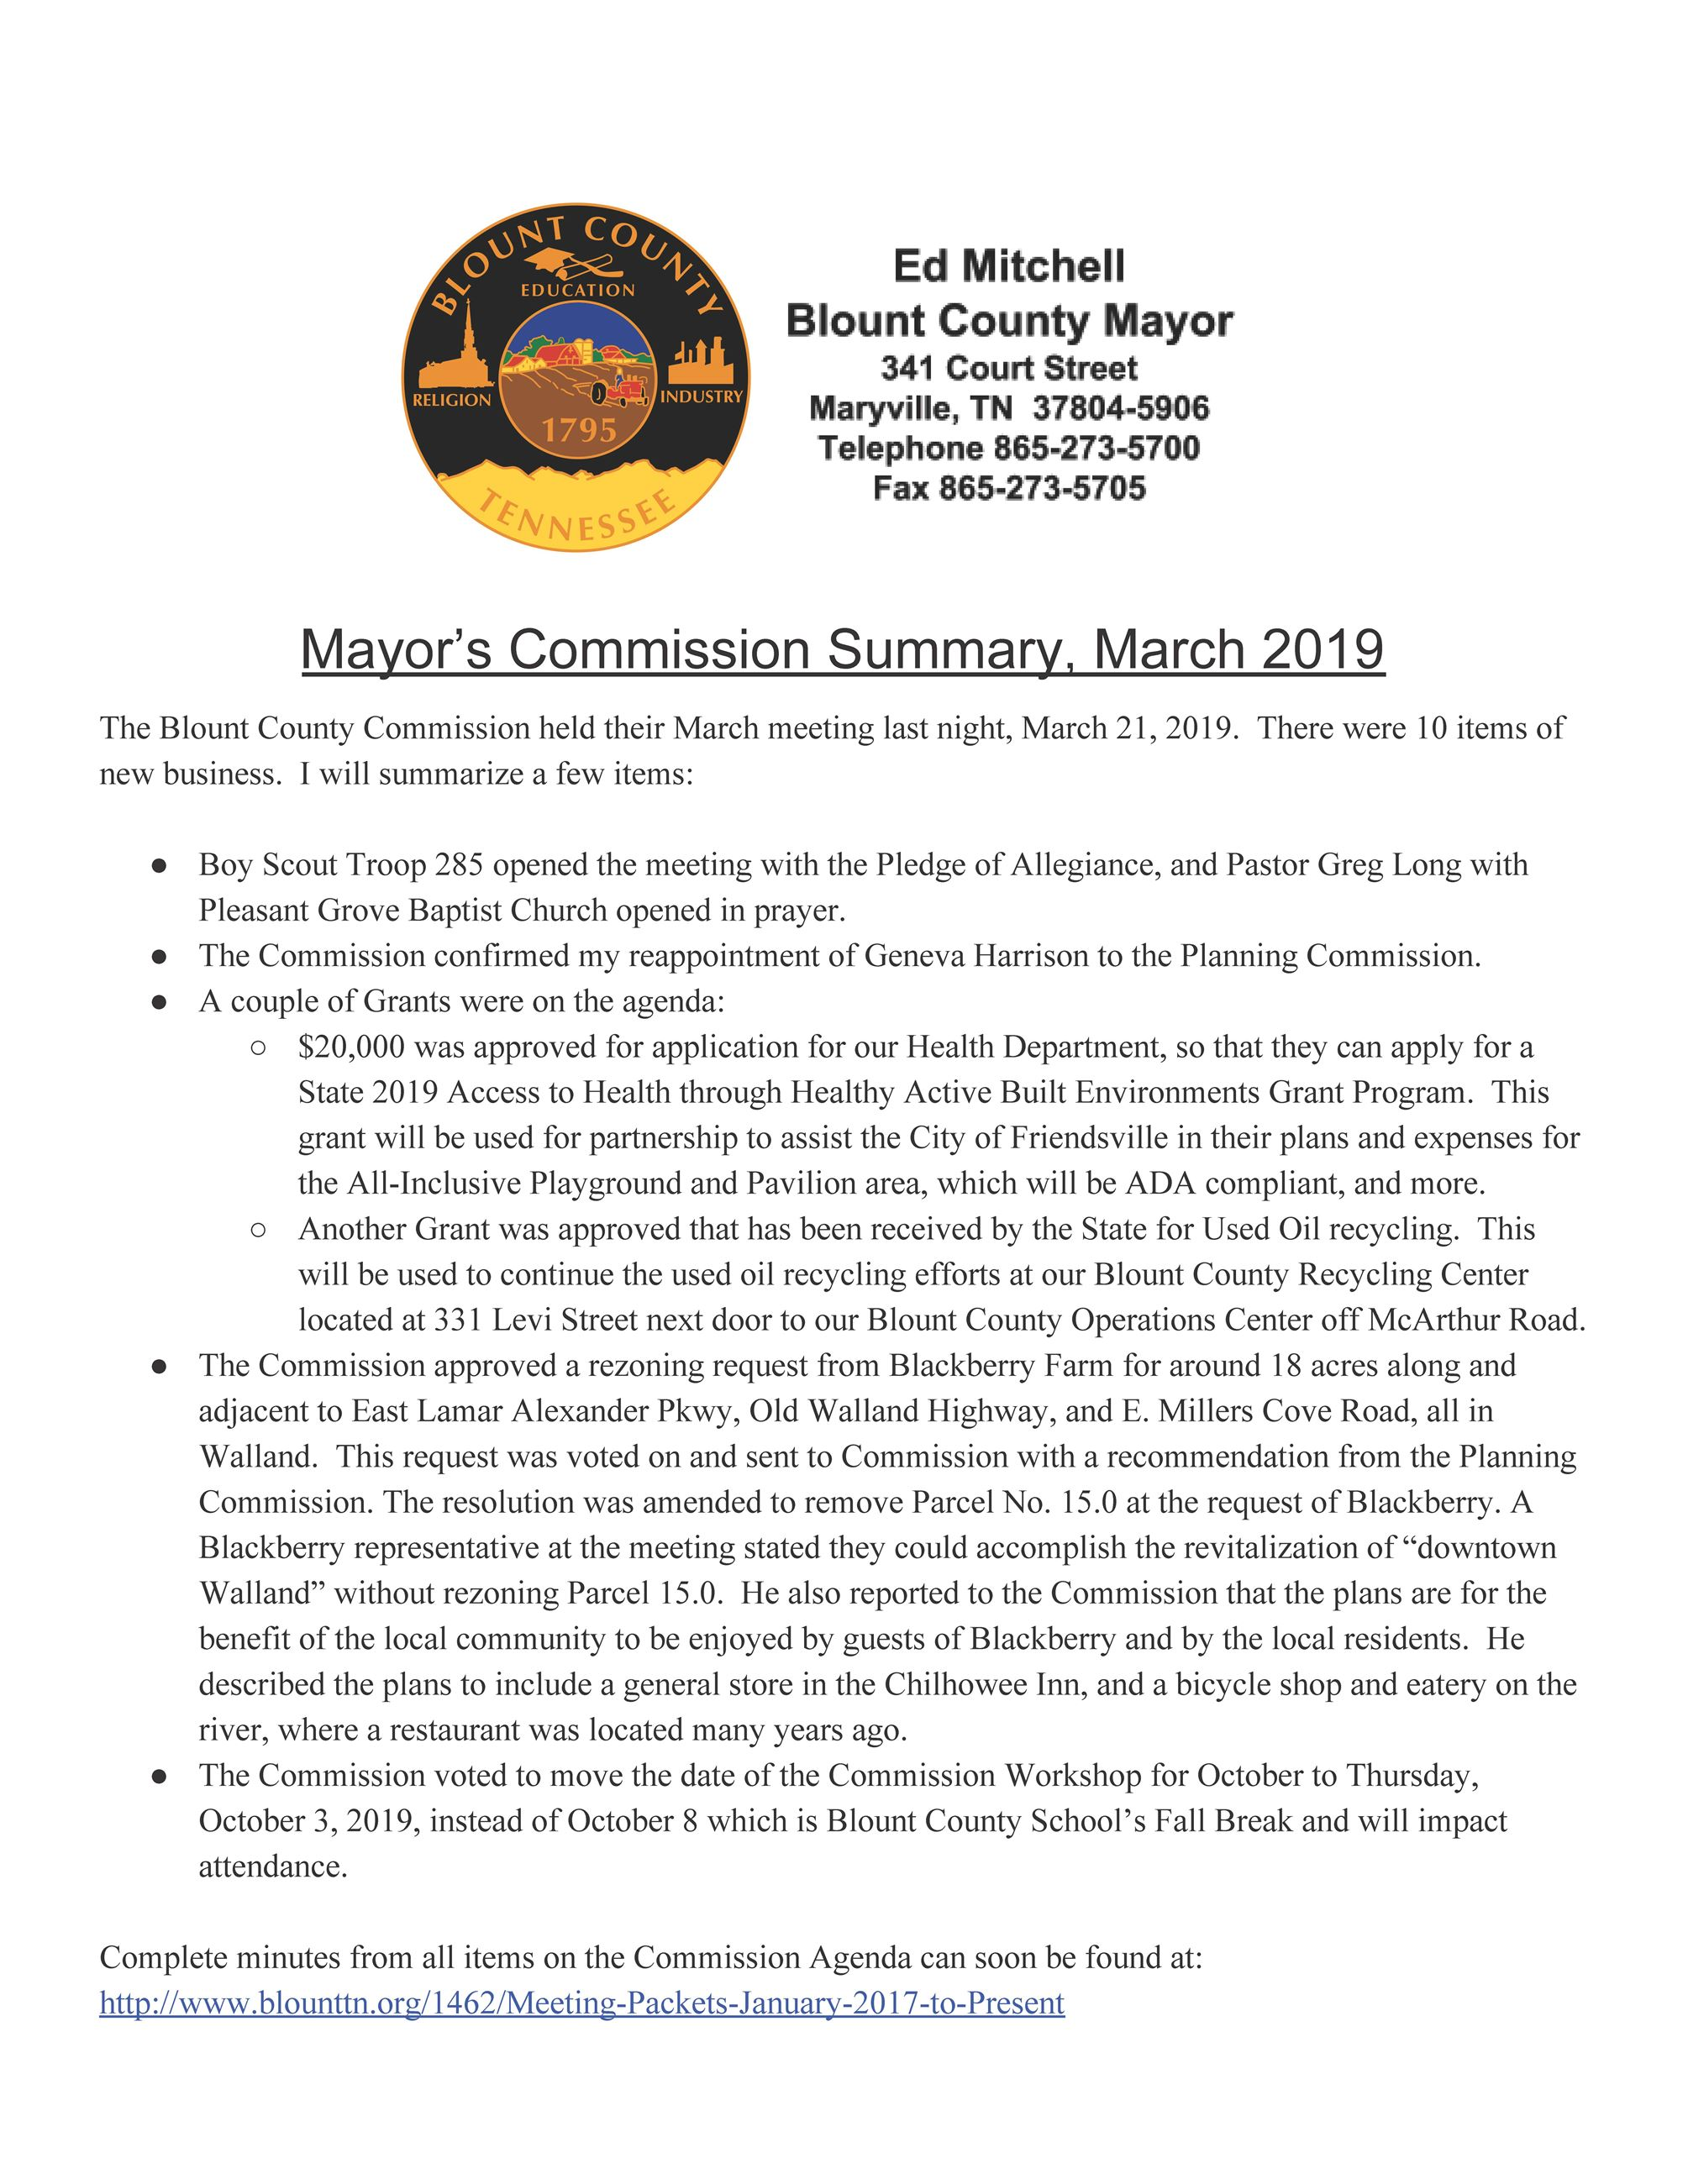 Mayor Commission Summary - March 2019